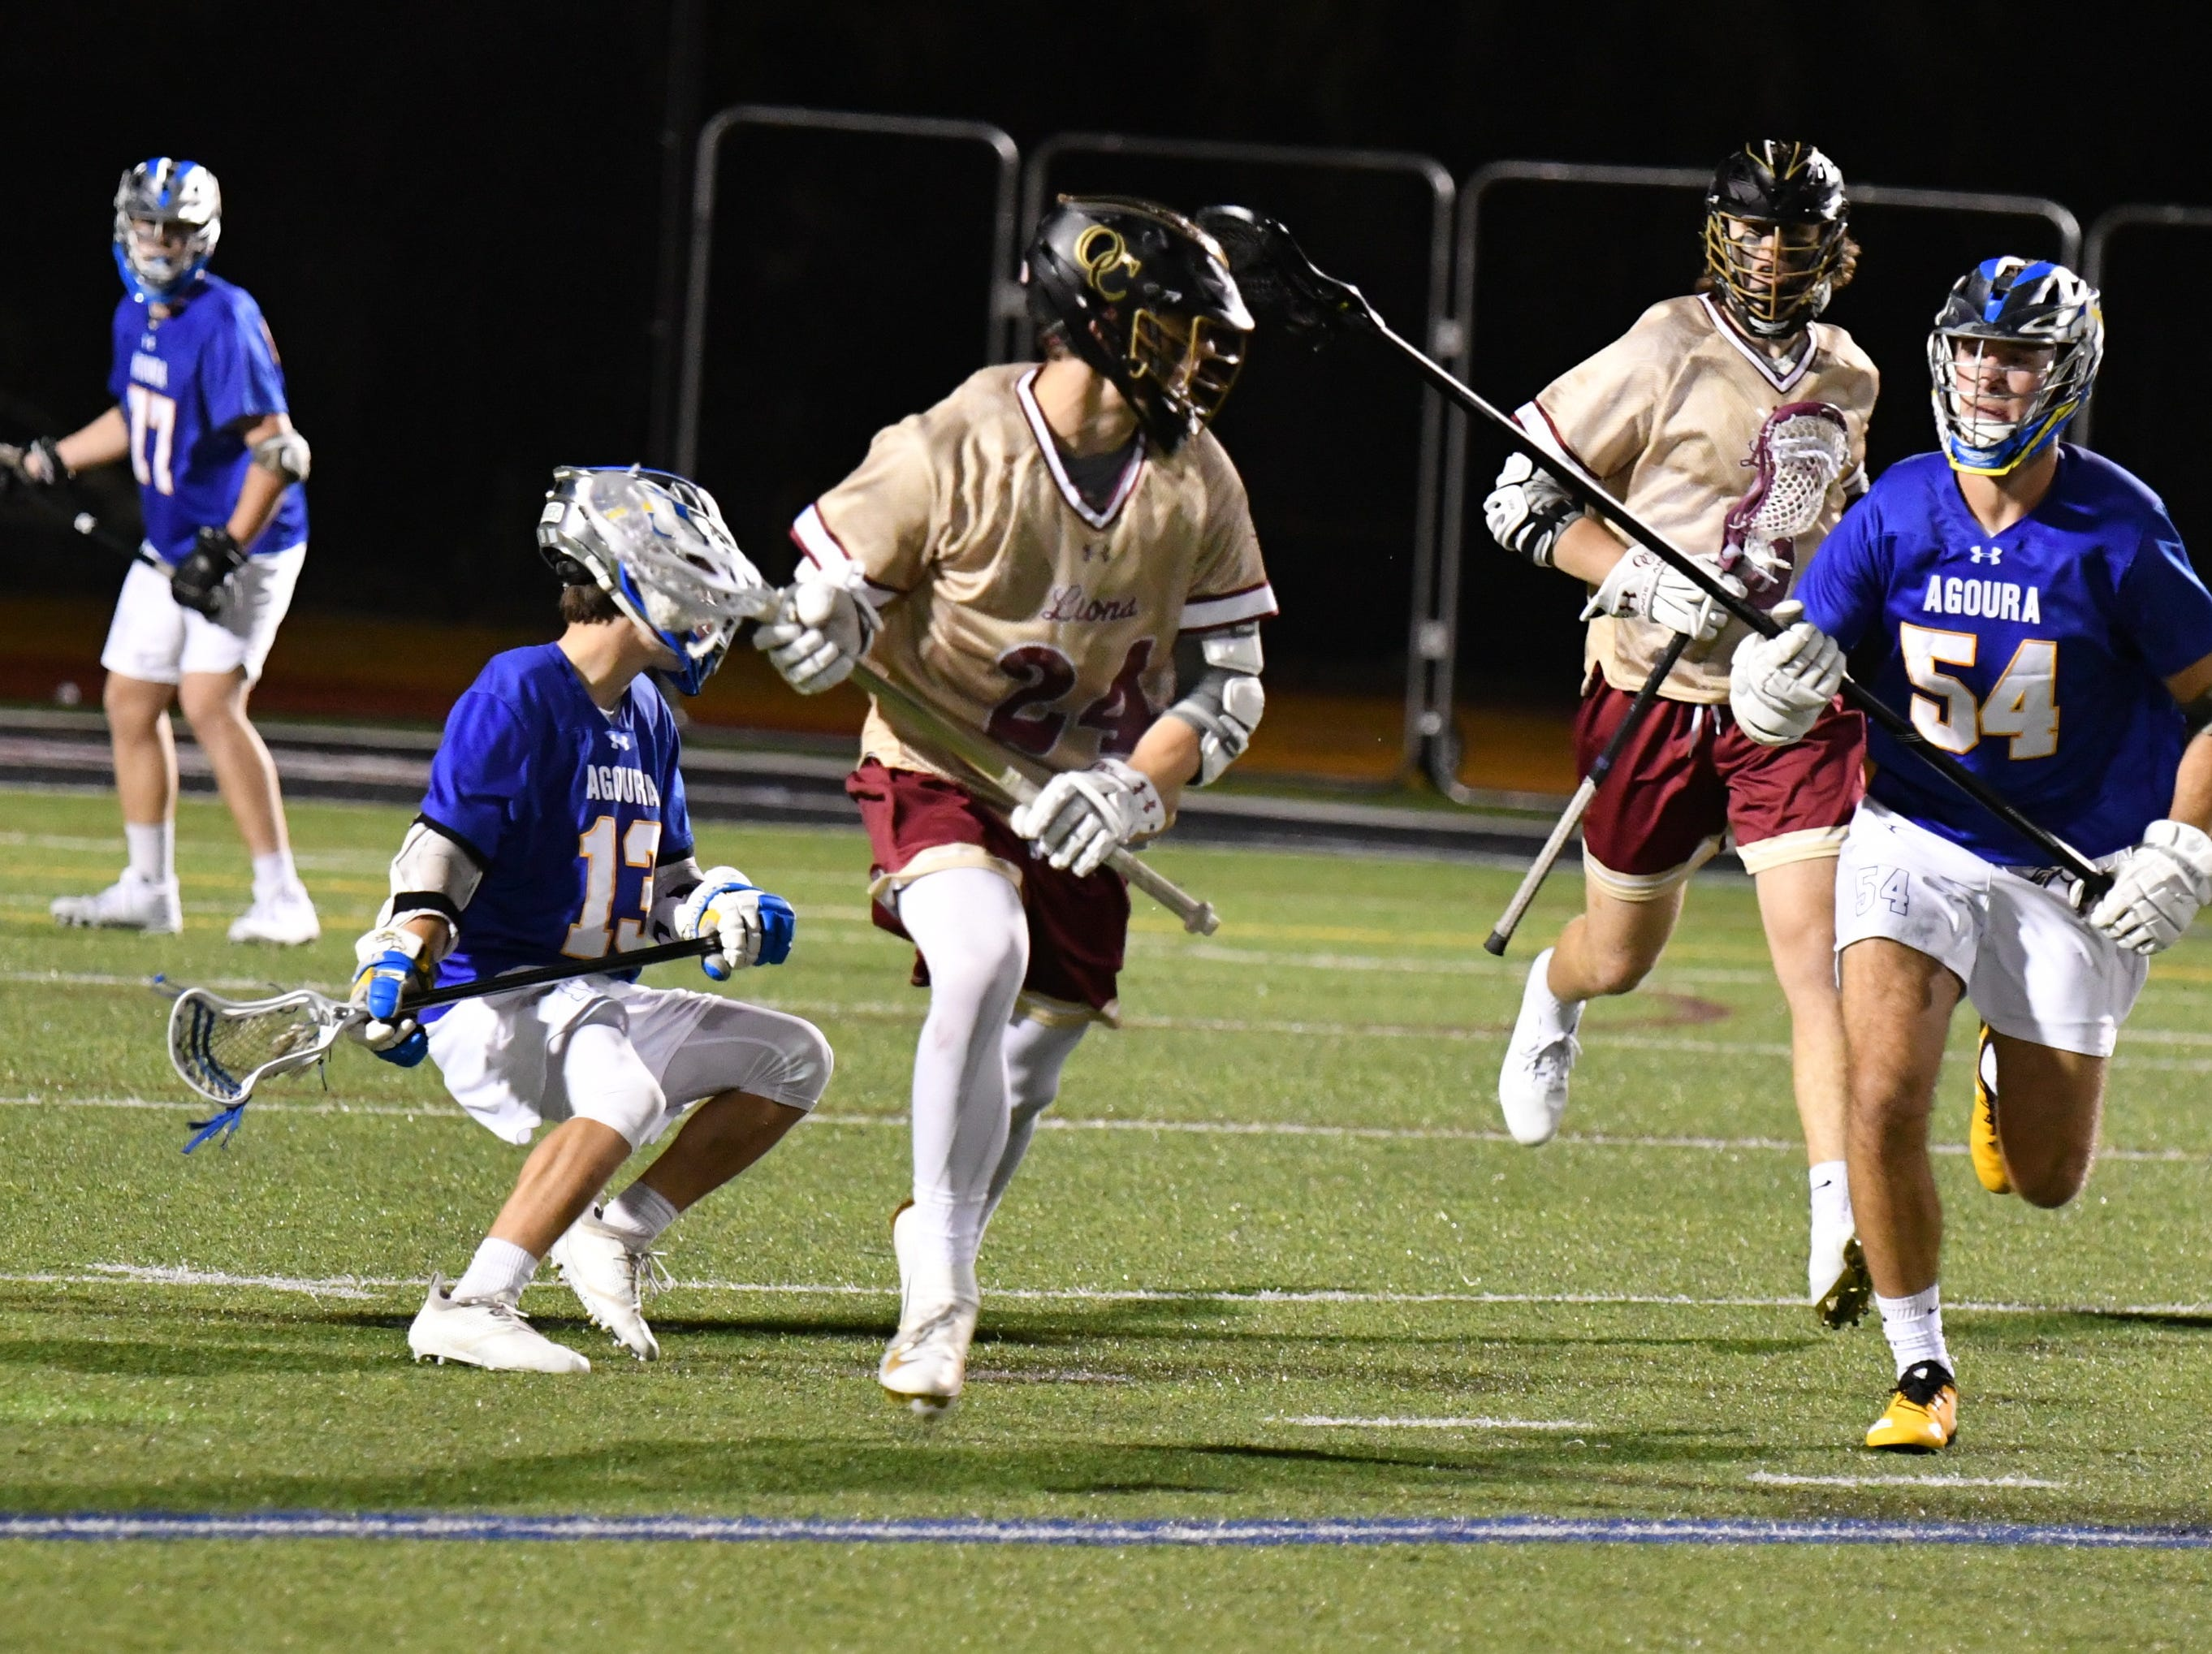 Oaks Christian midfielder Carson Campbell is chased by Agoura defender Nick Tripp during the teams' triple-overtime thriller on March 6. Oaks Christian won, 8-7.